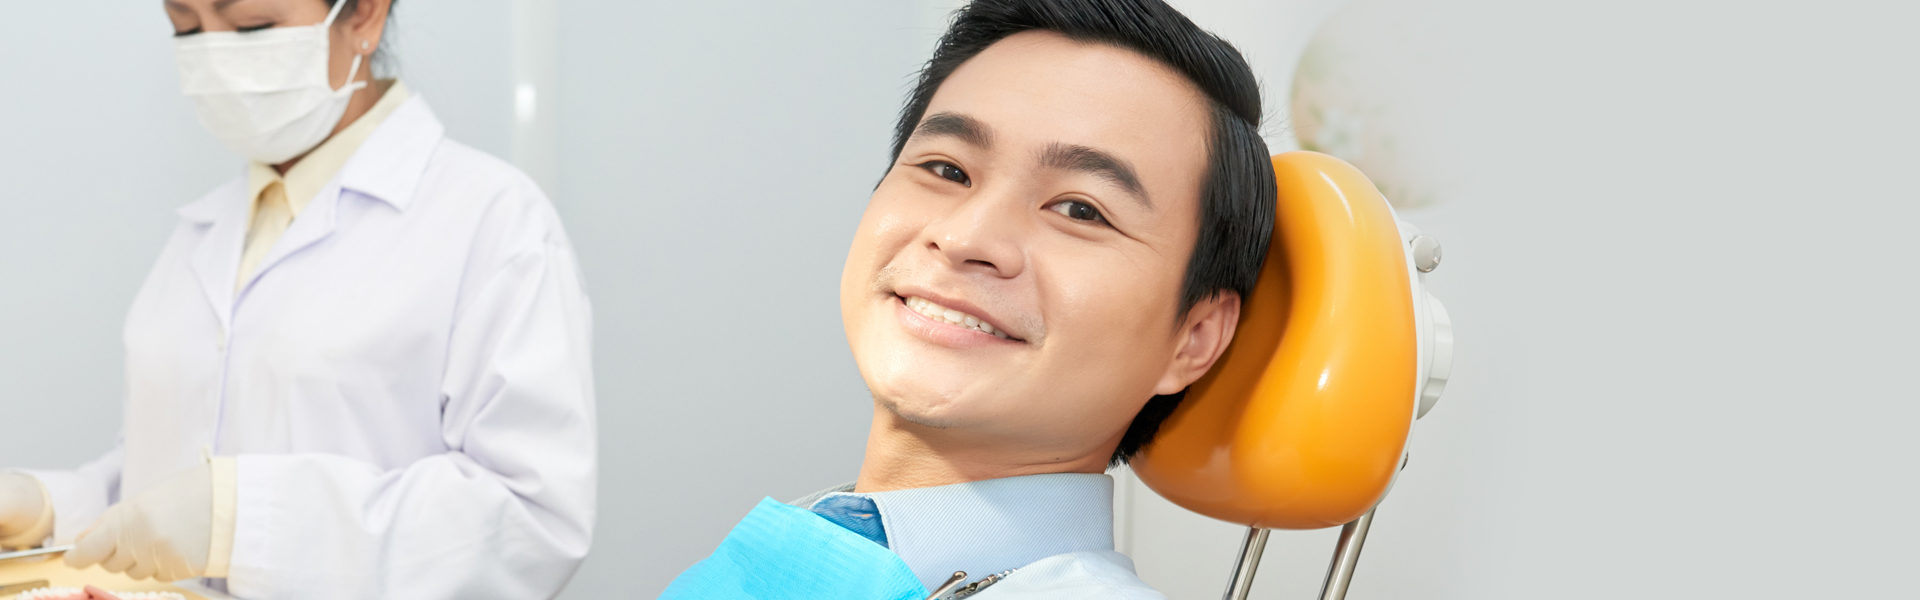 Oral Surgery in Cupertino, CA